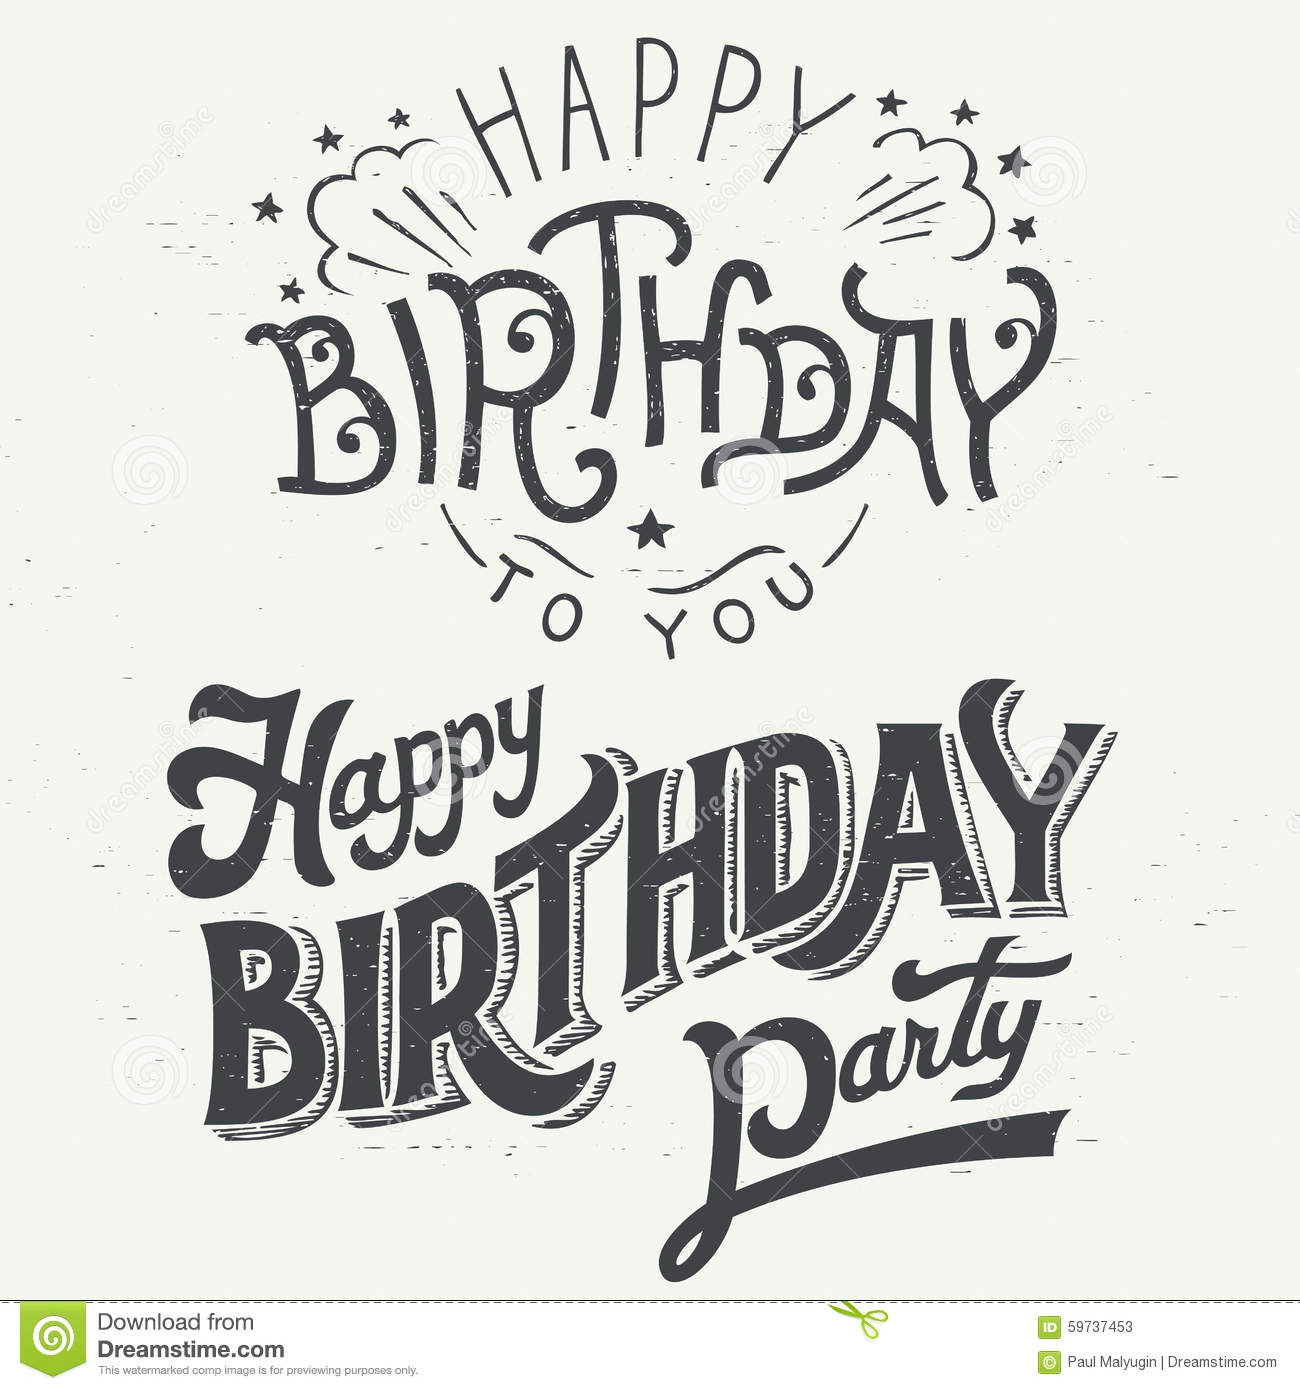 happy birthday drawing pictures ; happy-birthday-hand-drawn-typographic-design-set-greeting-cards-vintage-style-59737453